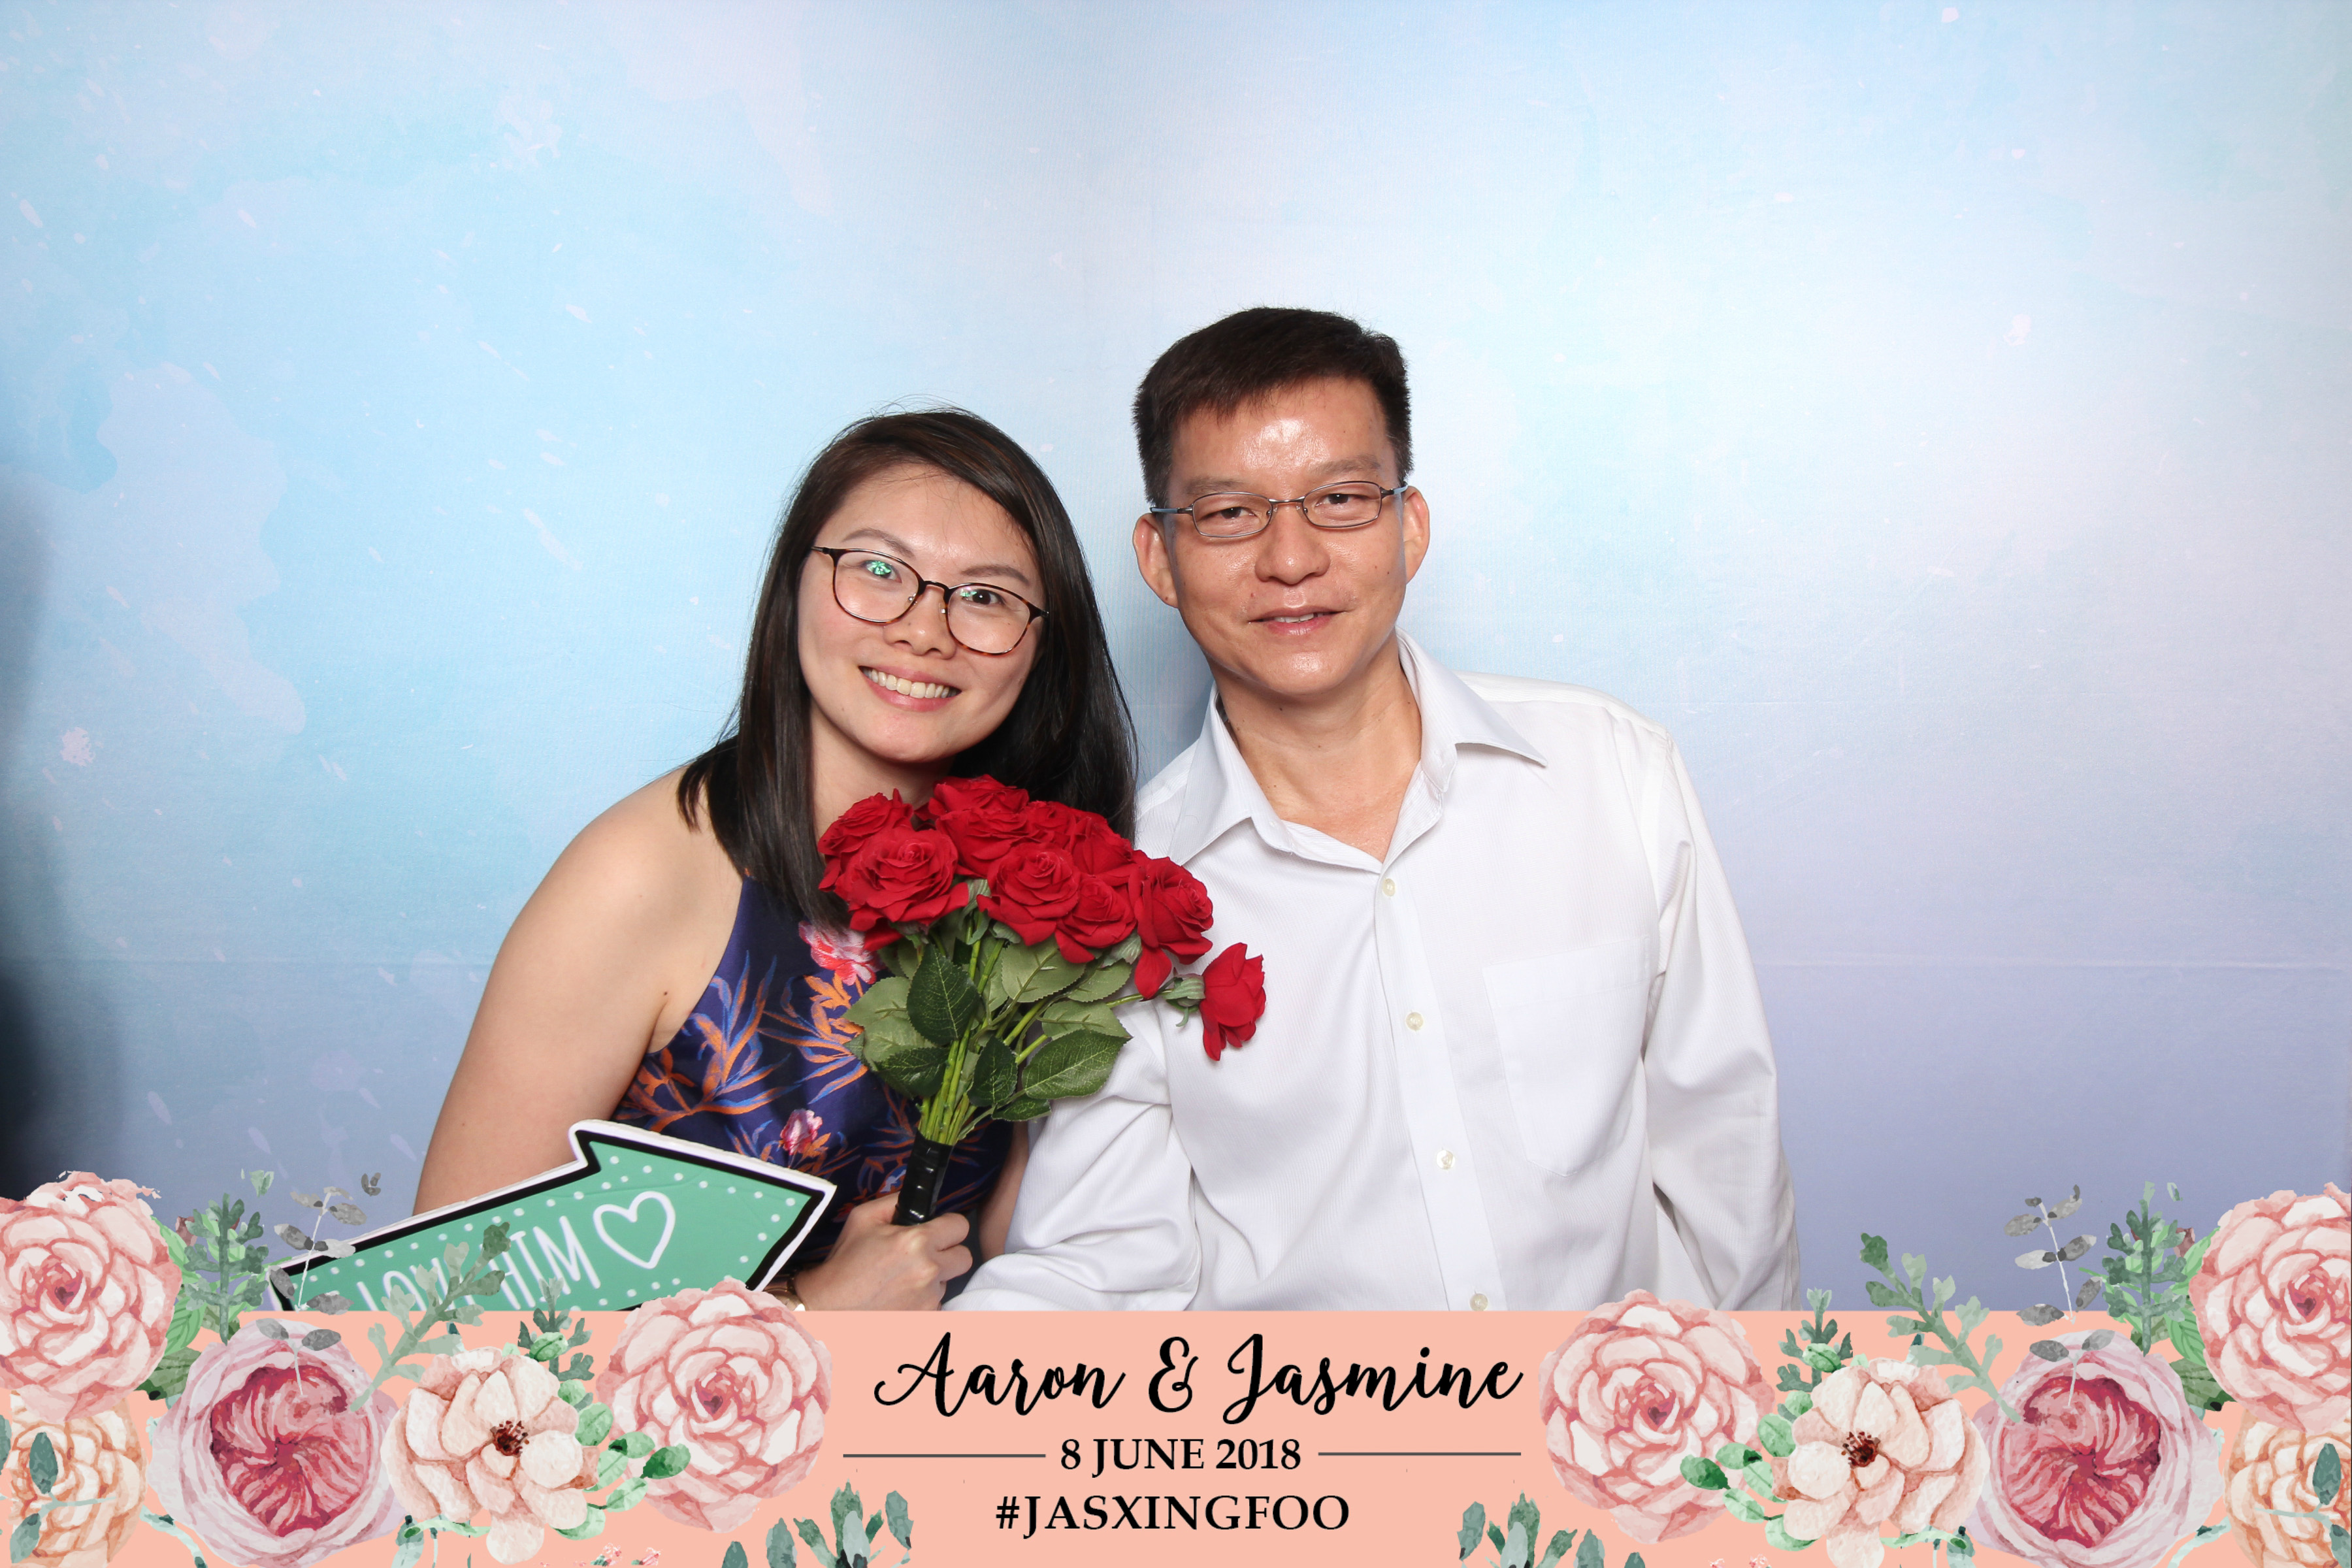 Photobooth 0806-55